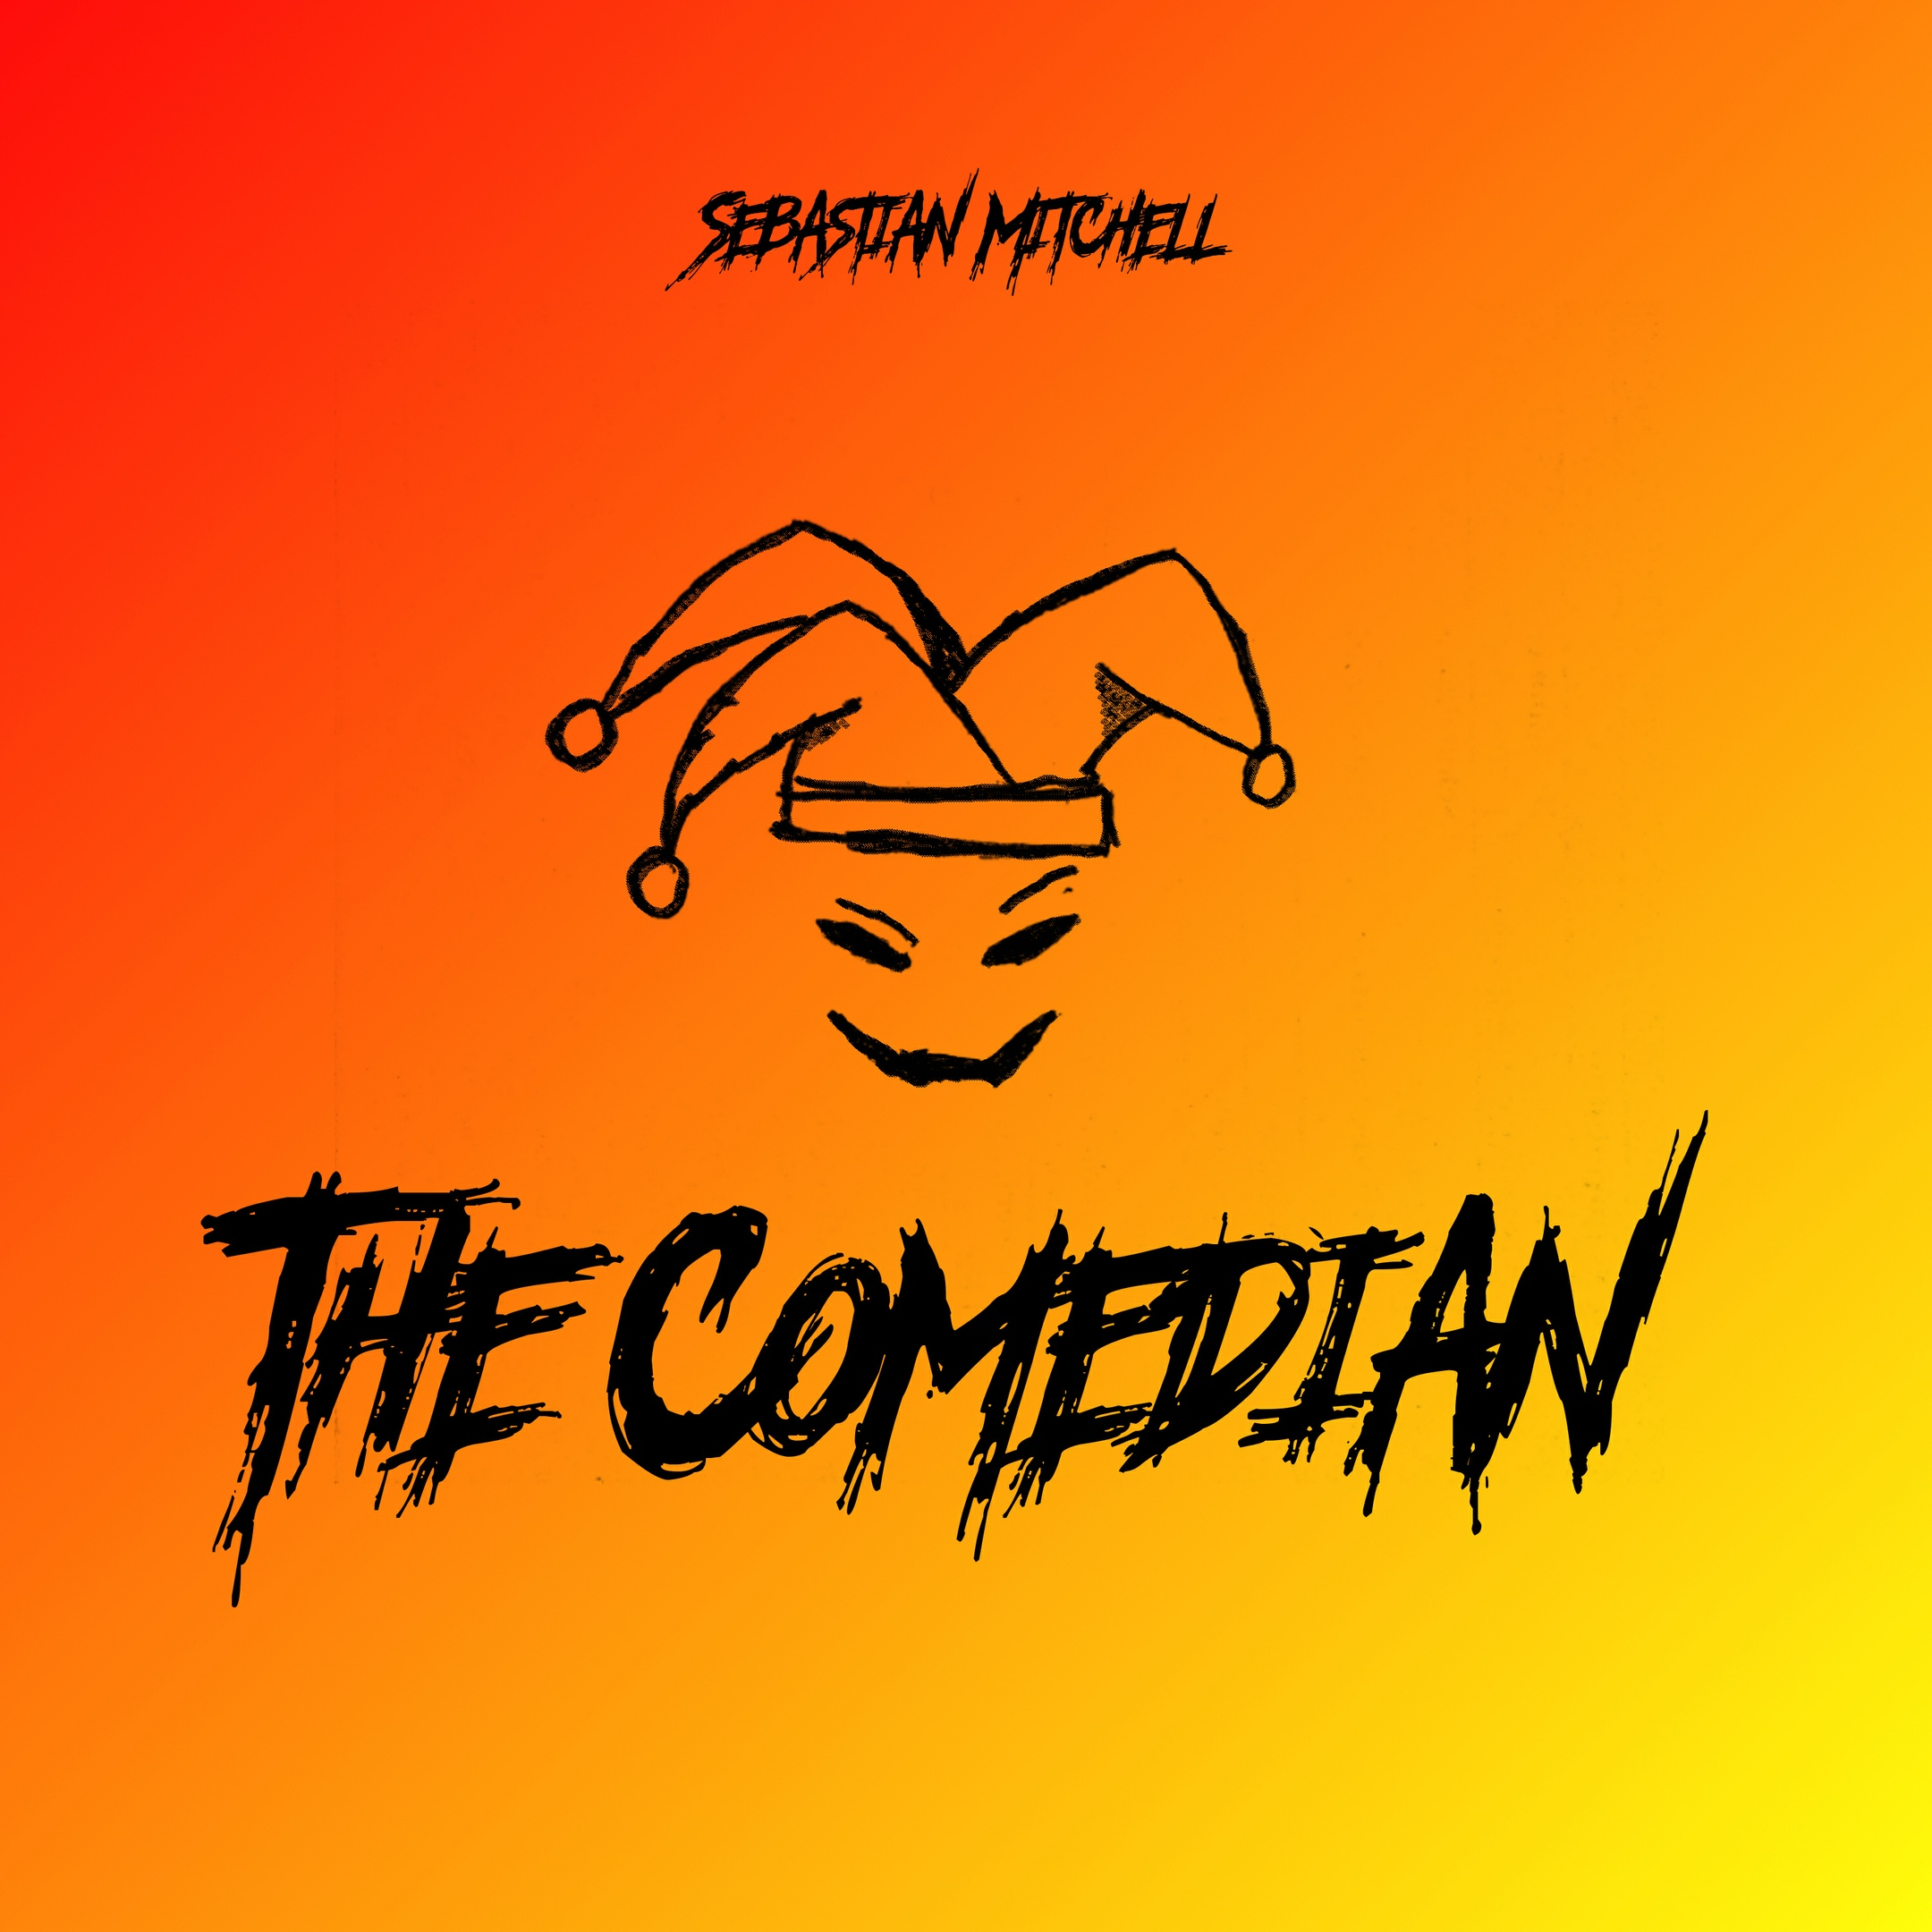 Sebastian Mitchell - The Comedian EP